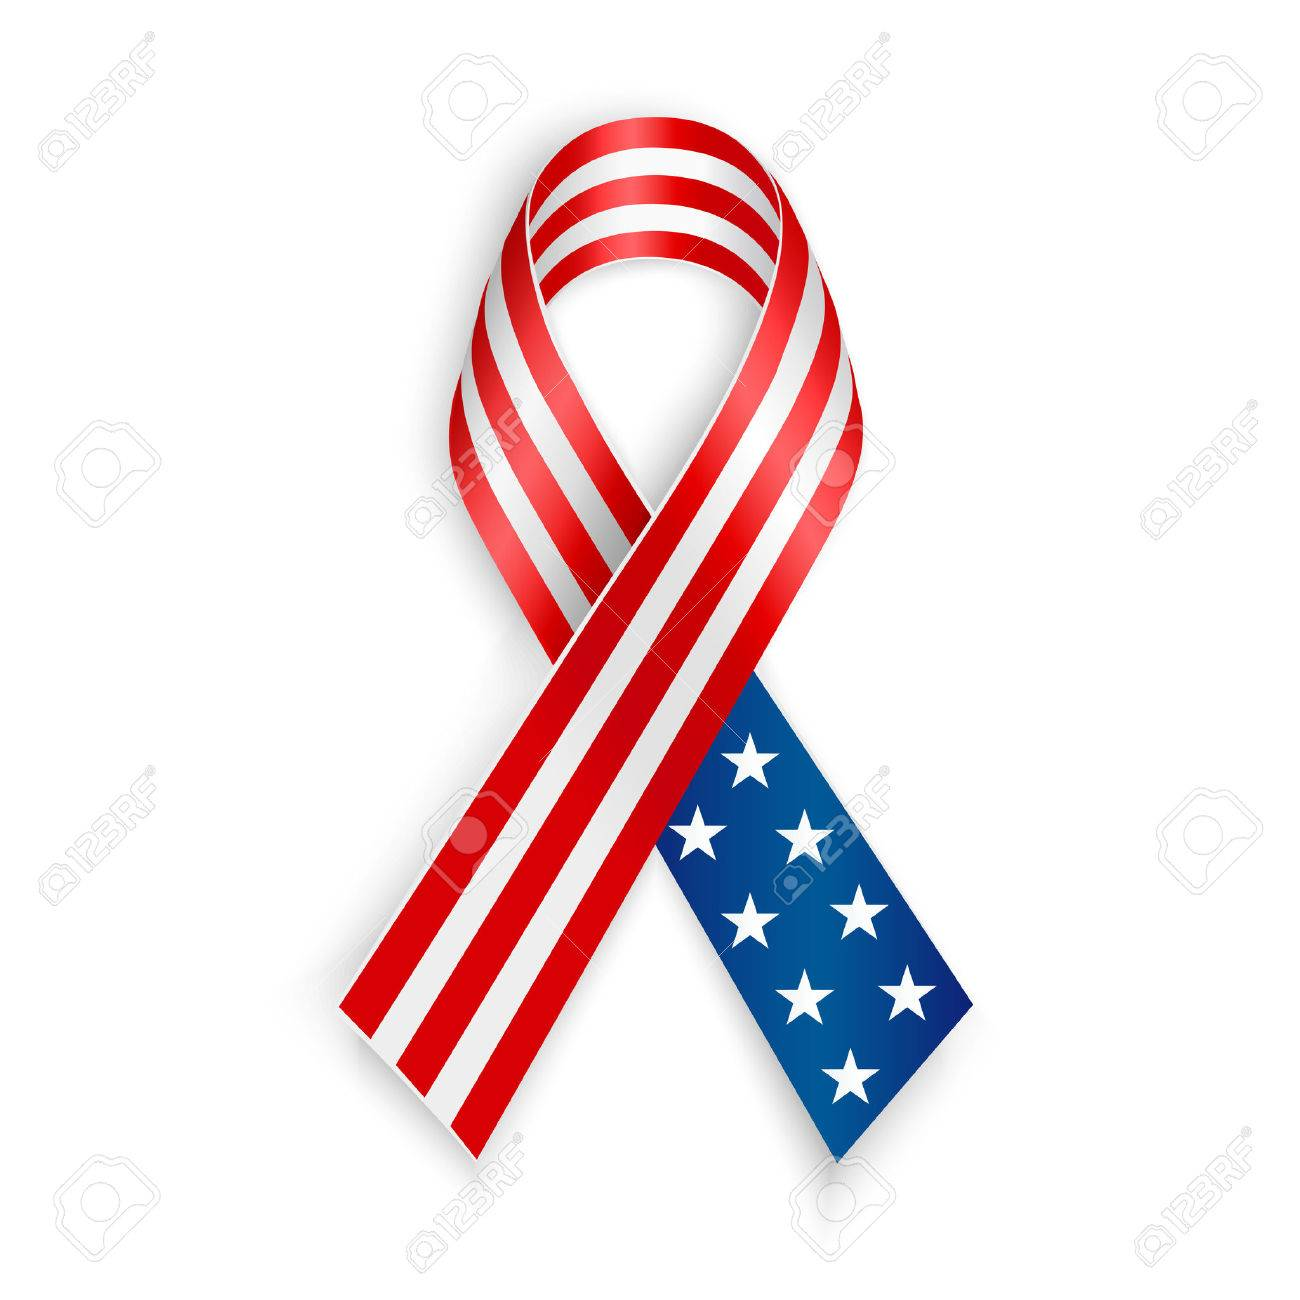 1300x1300 American Flag Ribbon. Patriotic Support Symbol. Independence